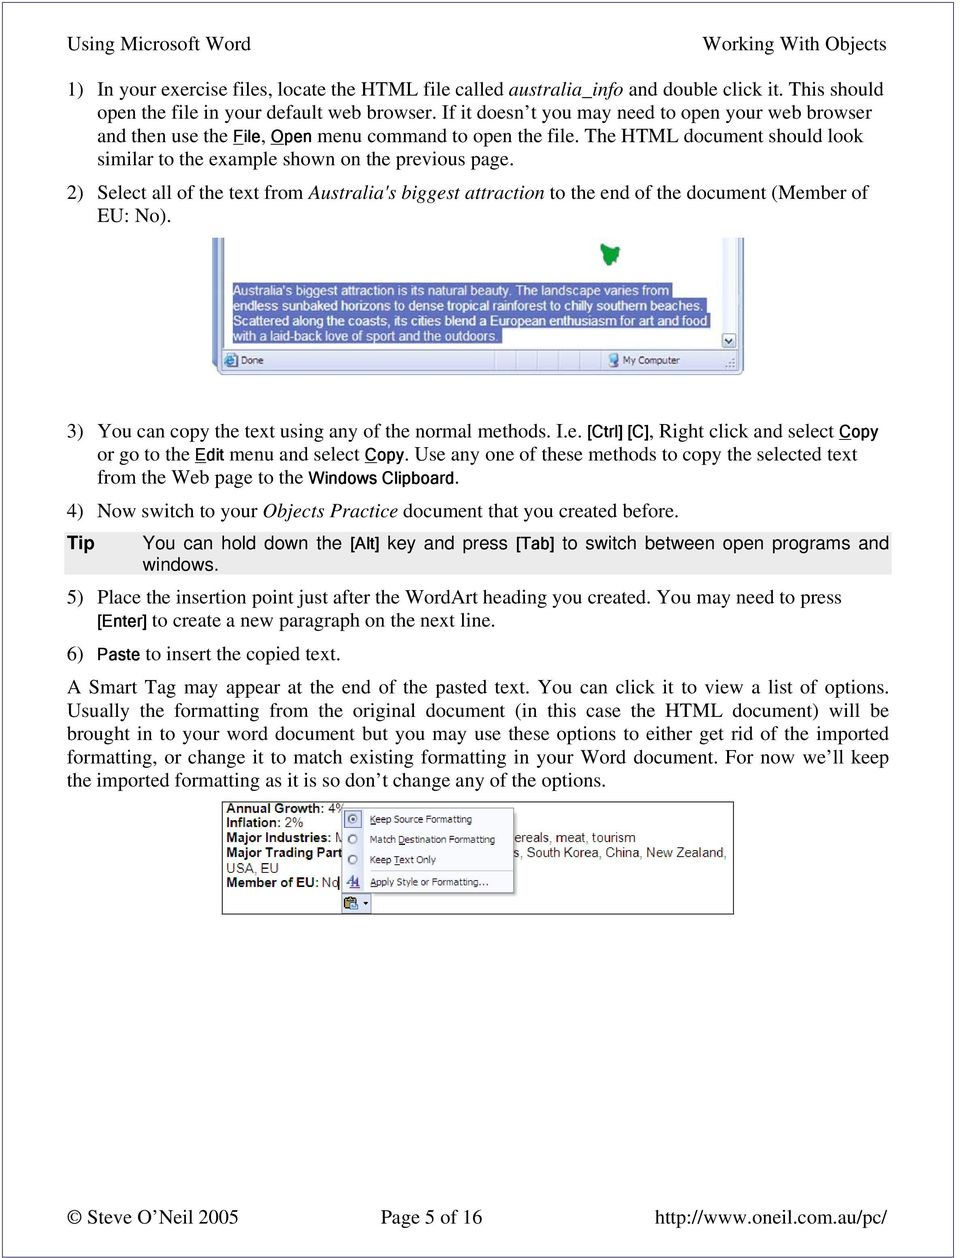 2) Select all of the text from Australia's biggest attraction to the end of the document (Member of EU: No). 3) You can copy the text using any of the normal methods. I.e. [Ctrl] [C], Right click and select Copy or go to the Edit menu and select Copy.